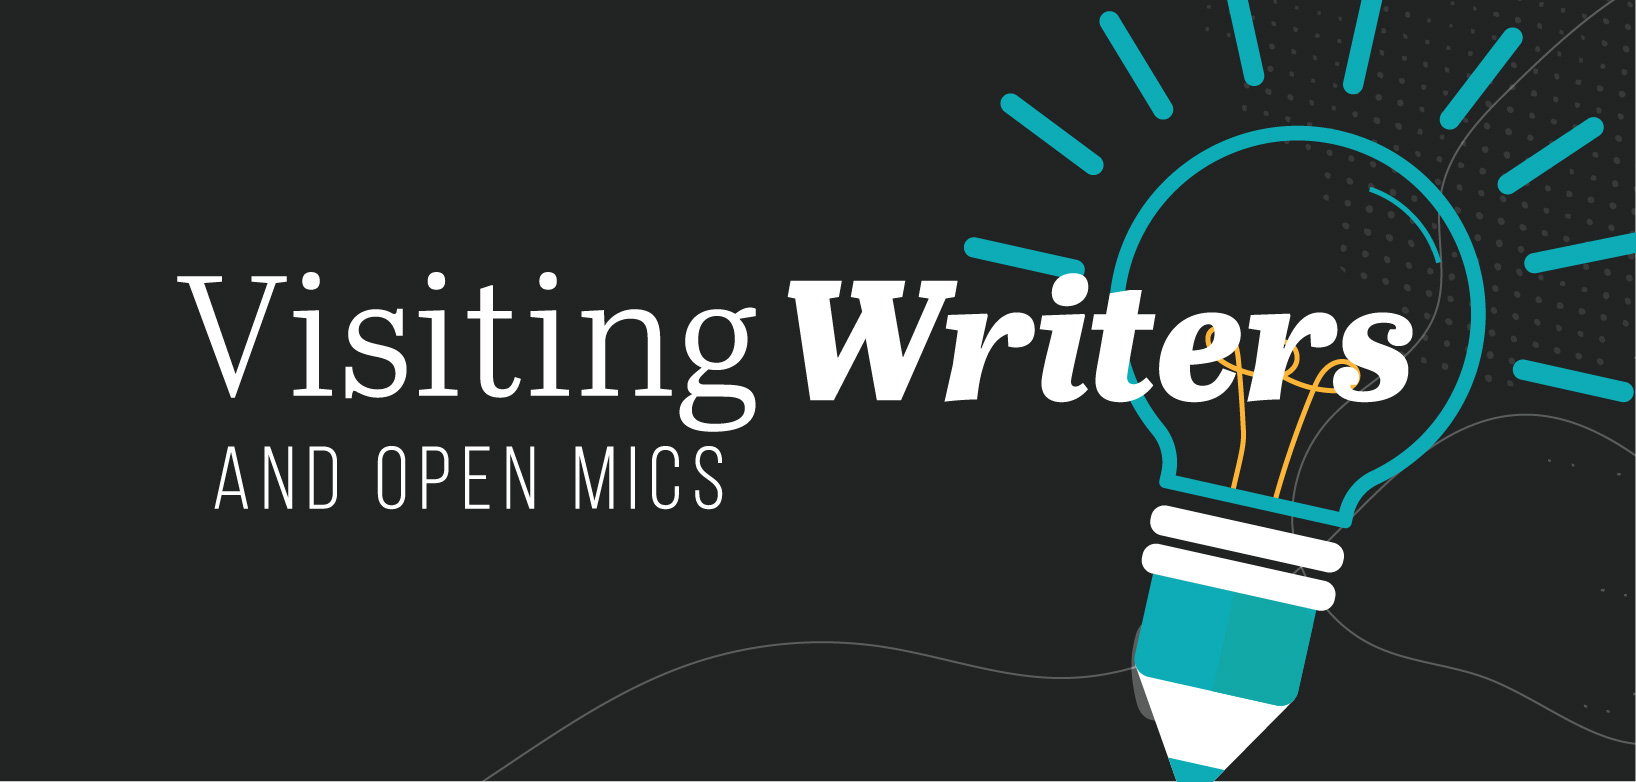 Text reads: Visiting Writers and Open Mics